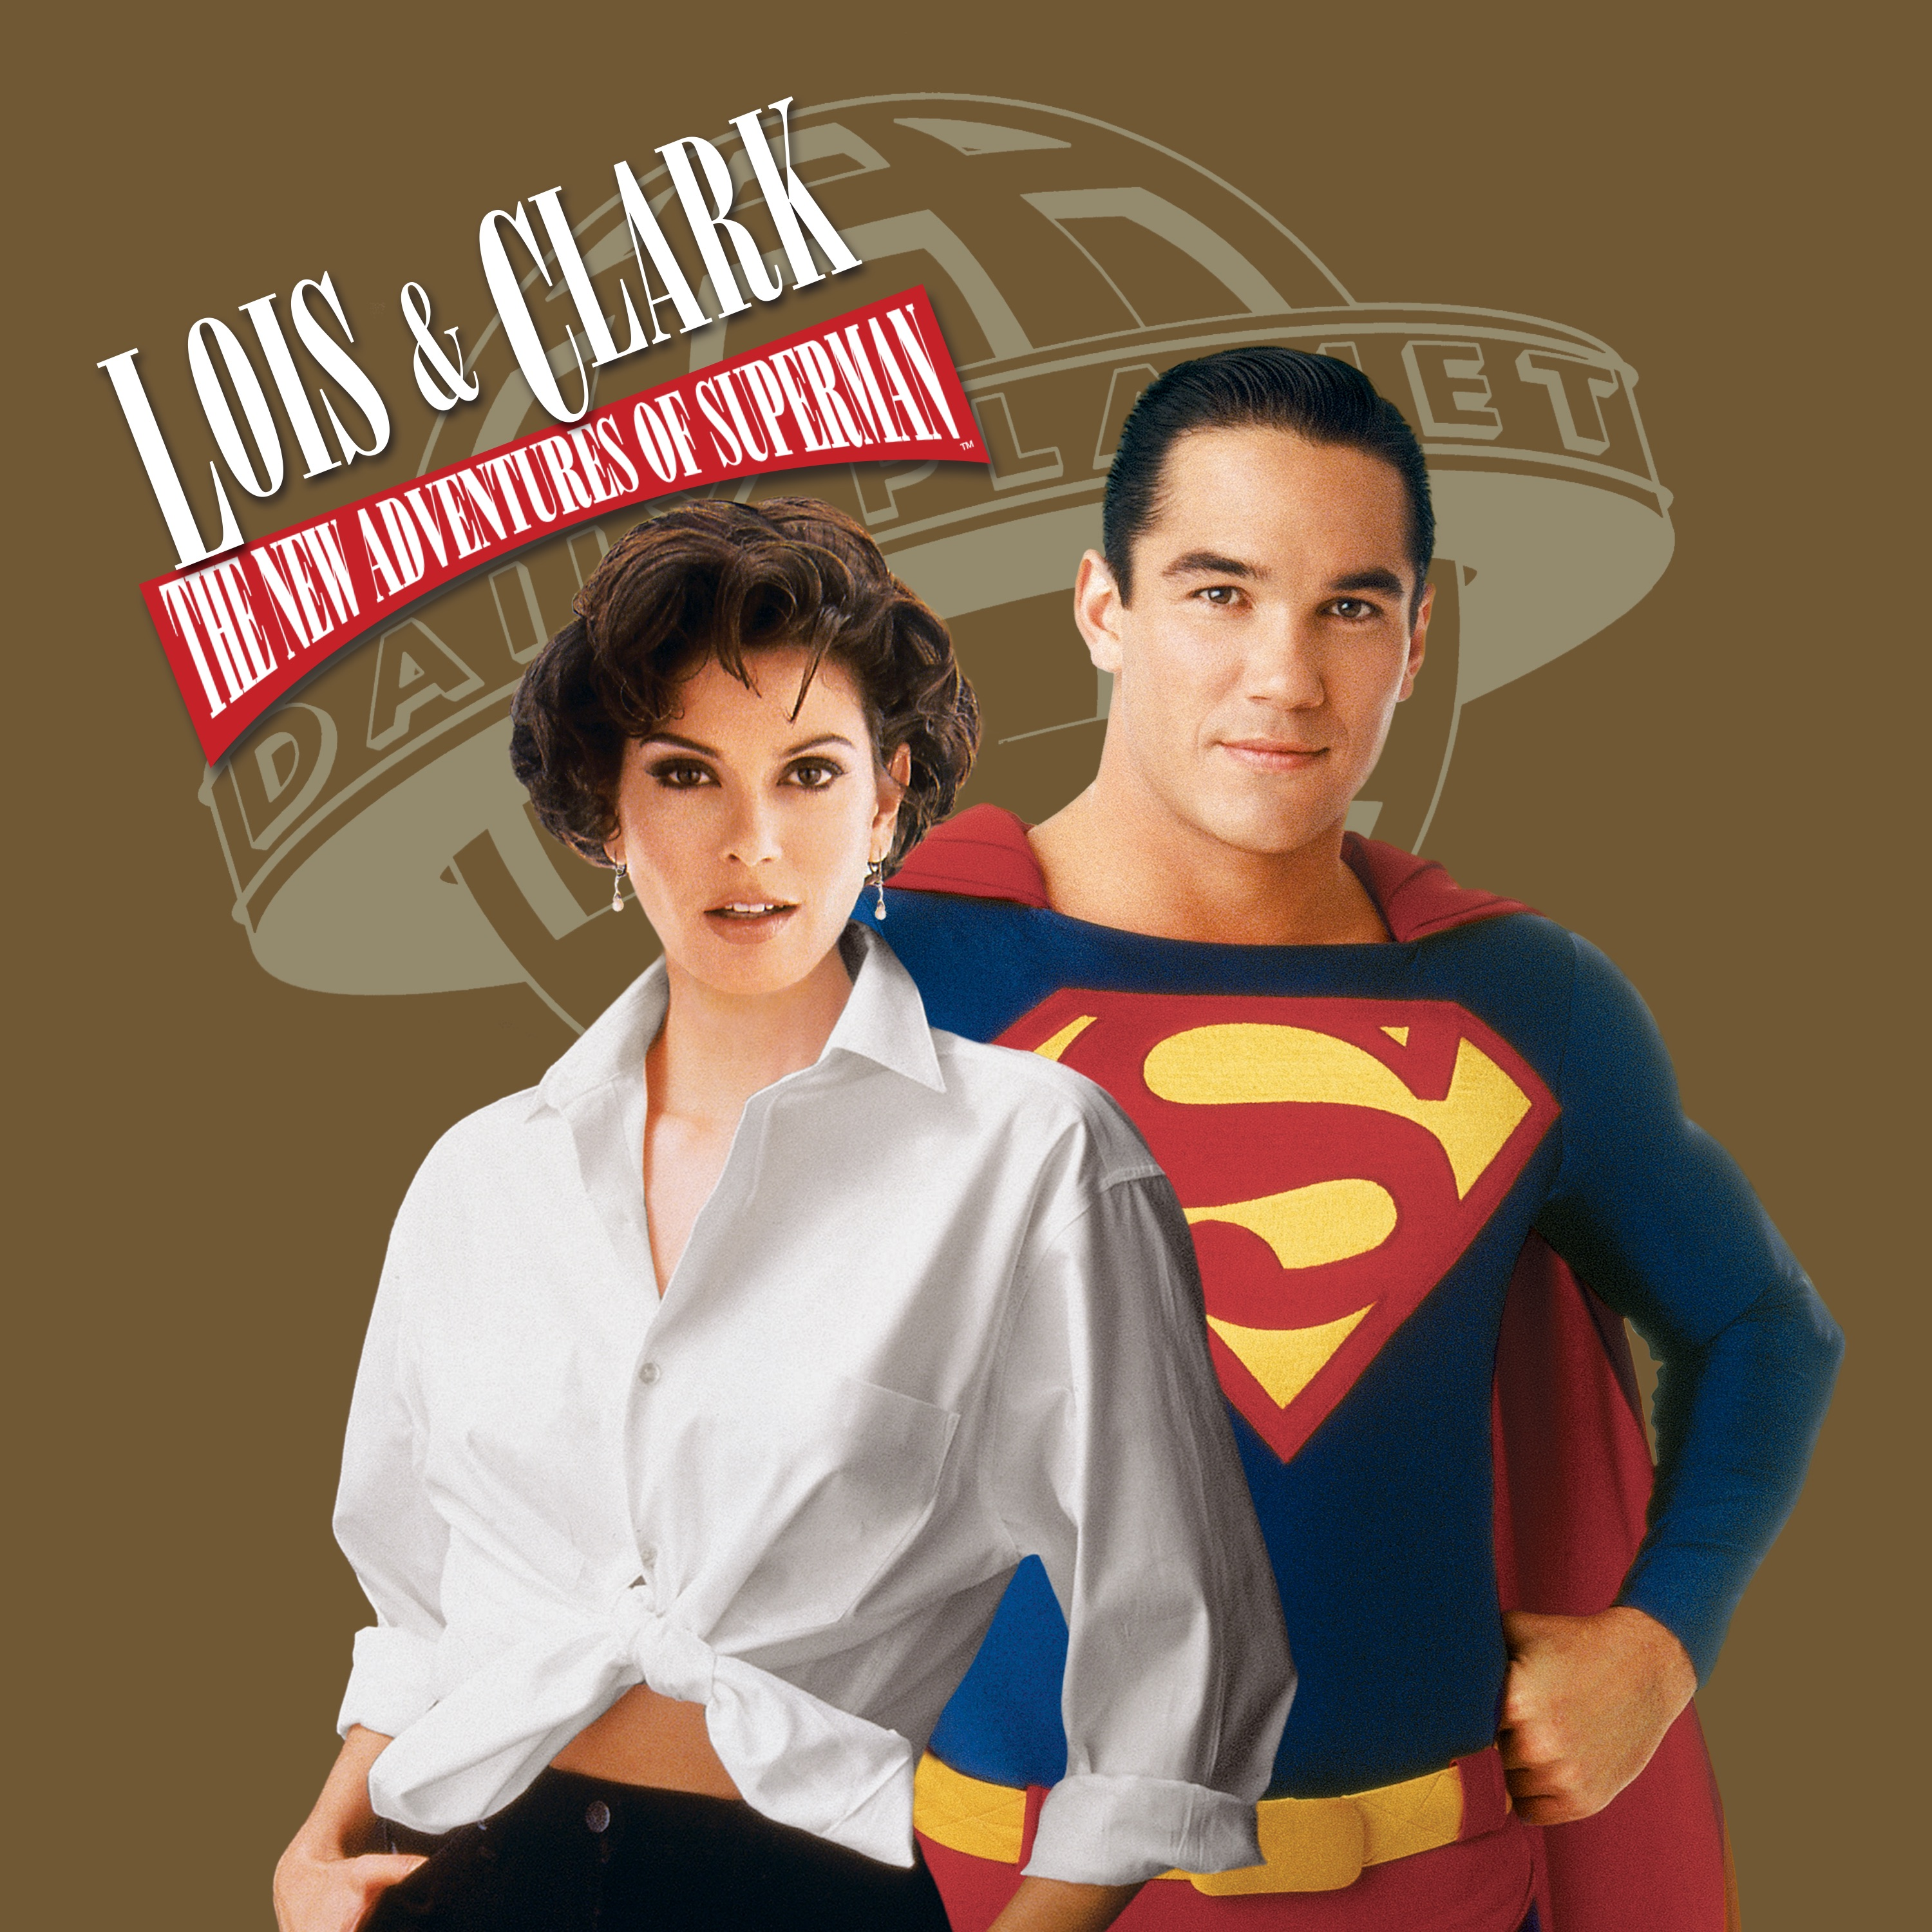 Lois and clark episode guide redhead